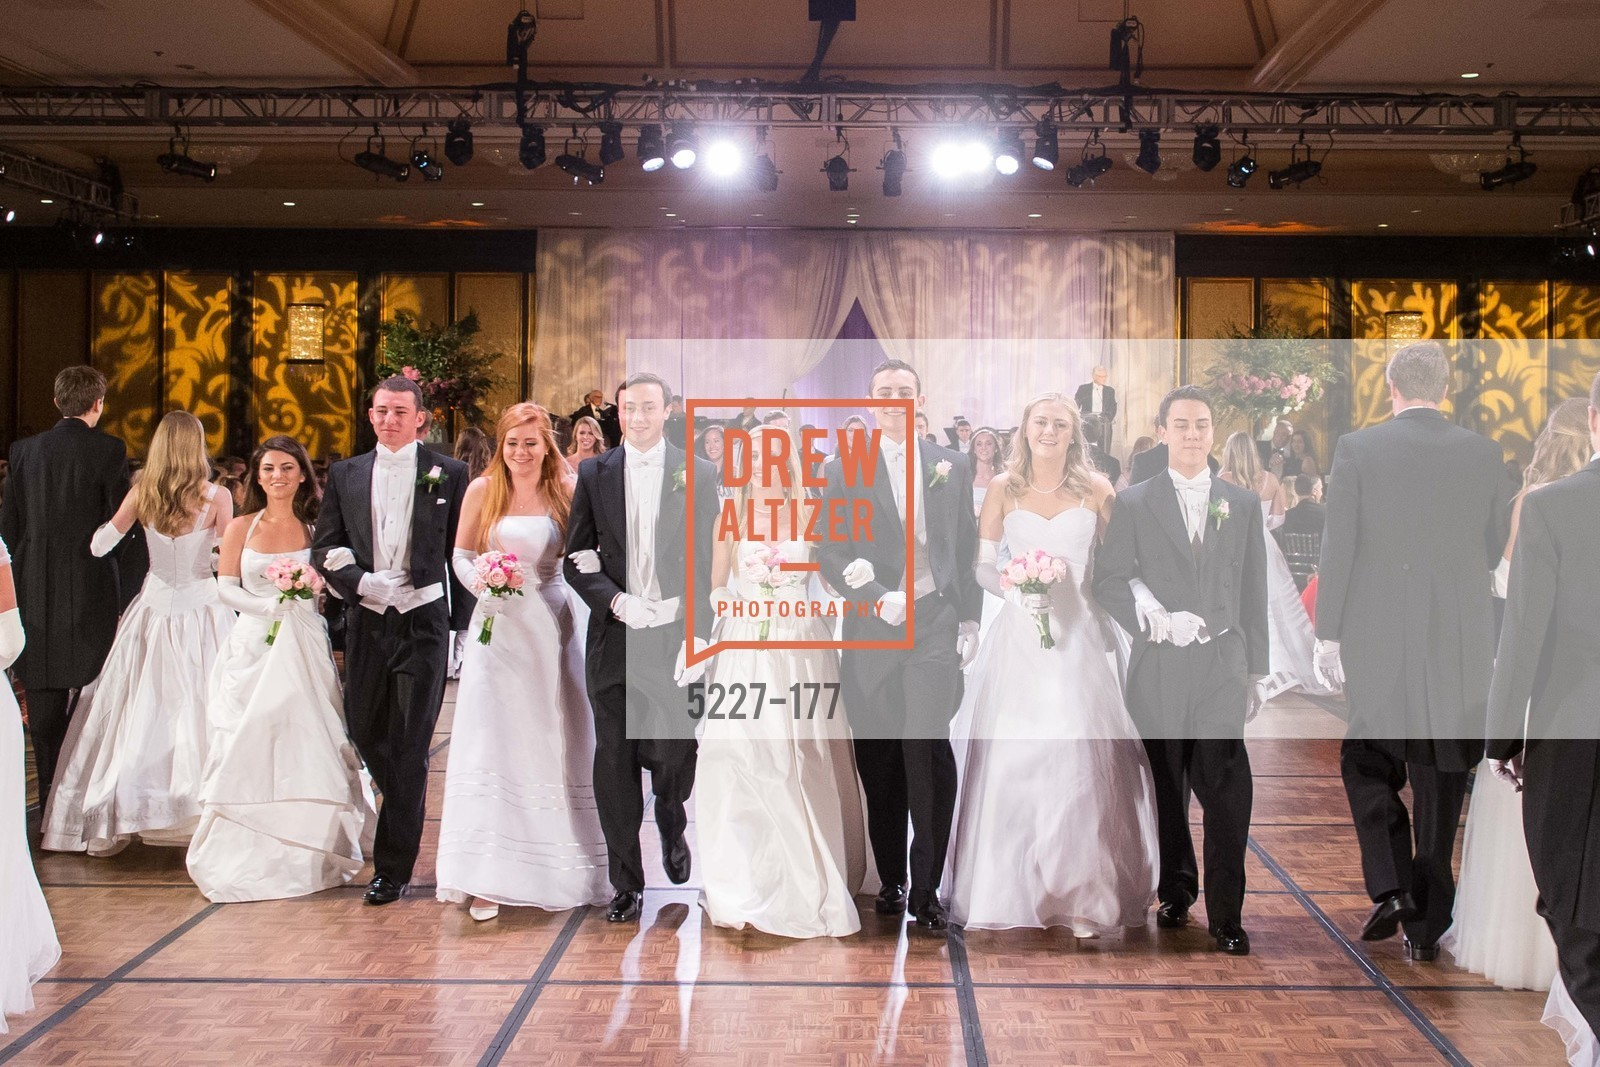 Paige Alexandra Silverman, Parker Wyatt Silverman, Camille Anne Rich, Kevin Michael Mannix II, Jennifer Suzanne Reynolds, Maxwell Tucker Brenner, Sara Reeves Scannell, Kai Otto Fukami Vogel, The 2015 San Francisco Debutante Ball, The Westin St. Francis San Francisco Union Square. 335 Powell St, June 20th, 2015,Drew Altizer, Drew Altizer Photography, full-service agency, private events, San Francisco photographer, photographer california